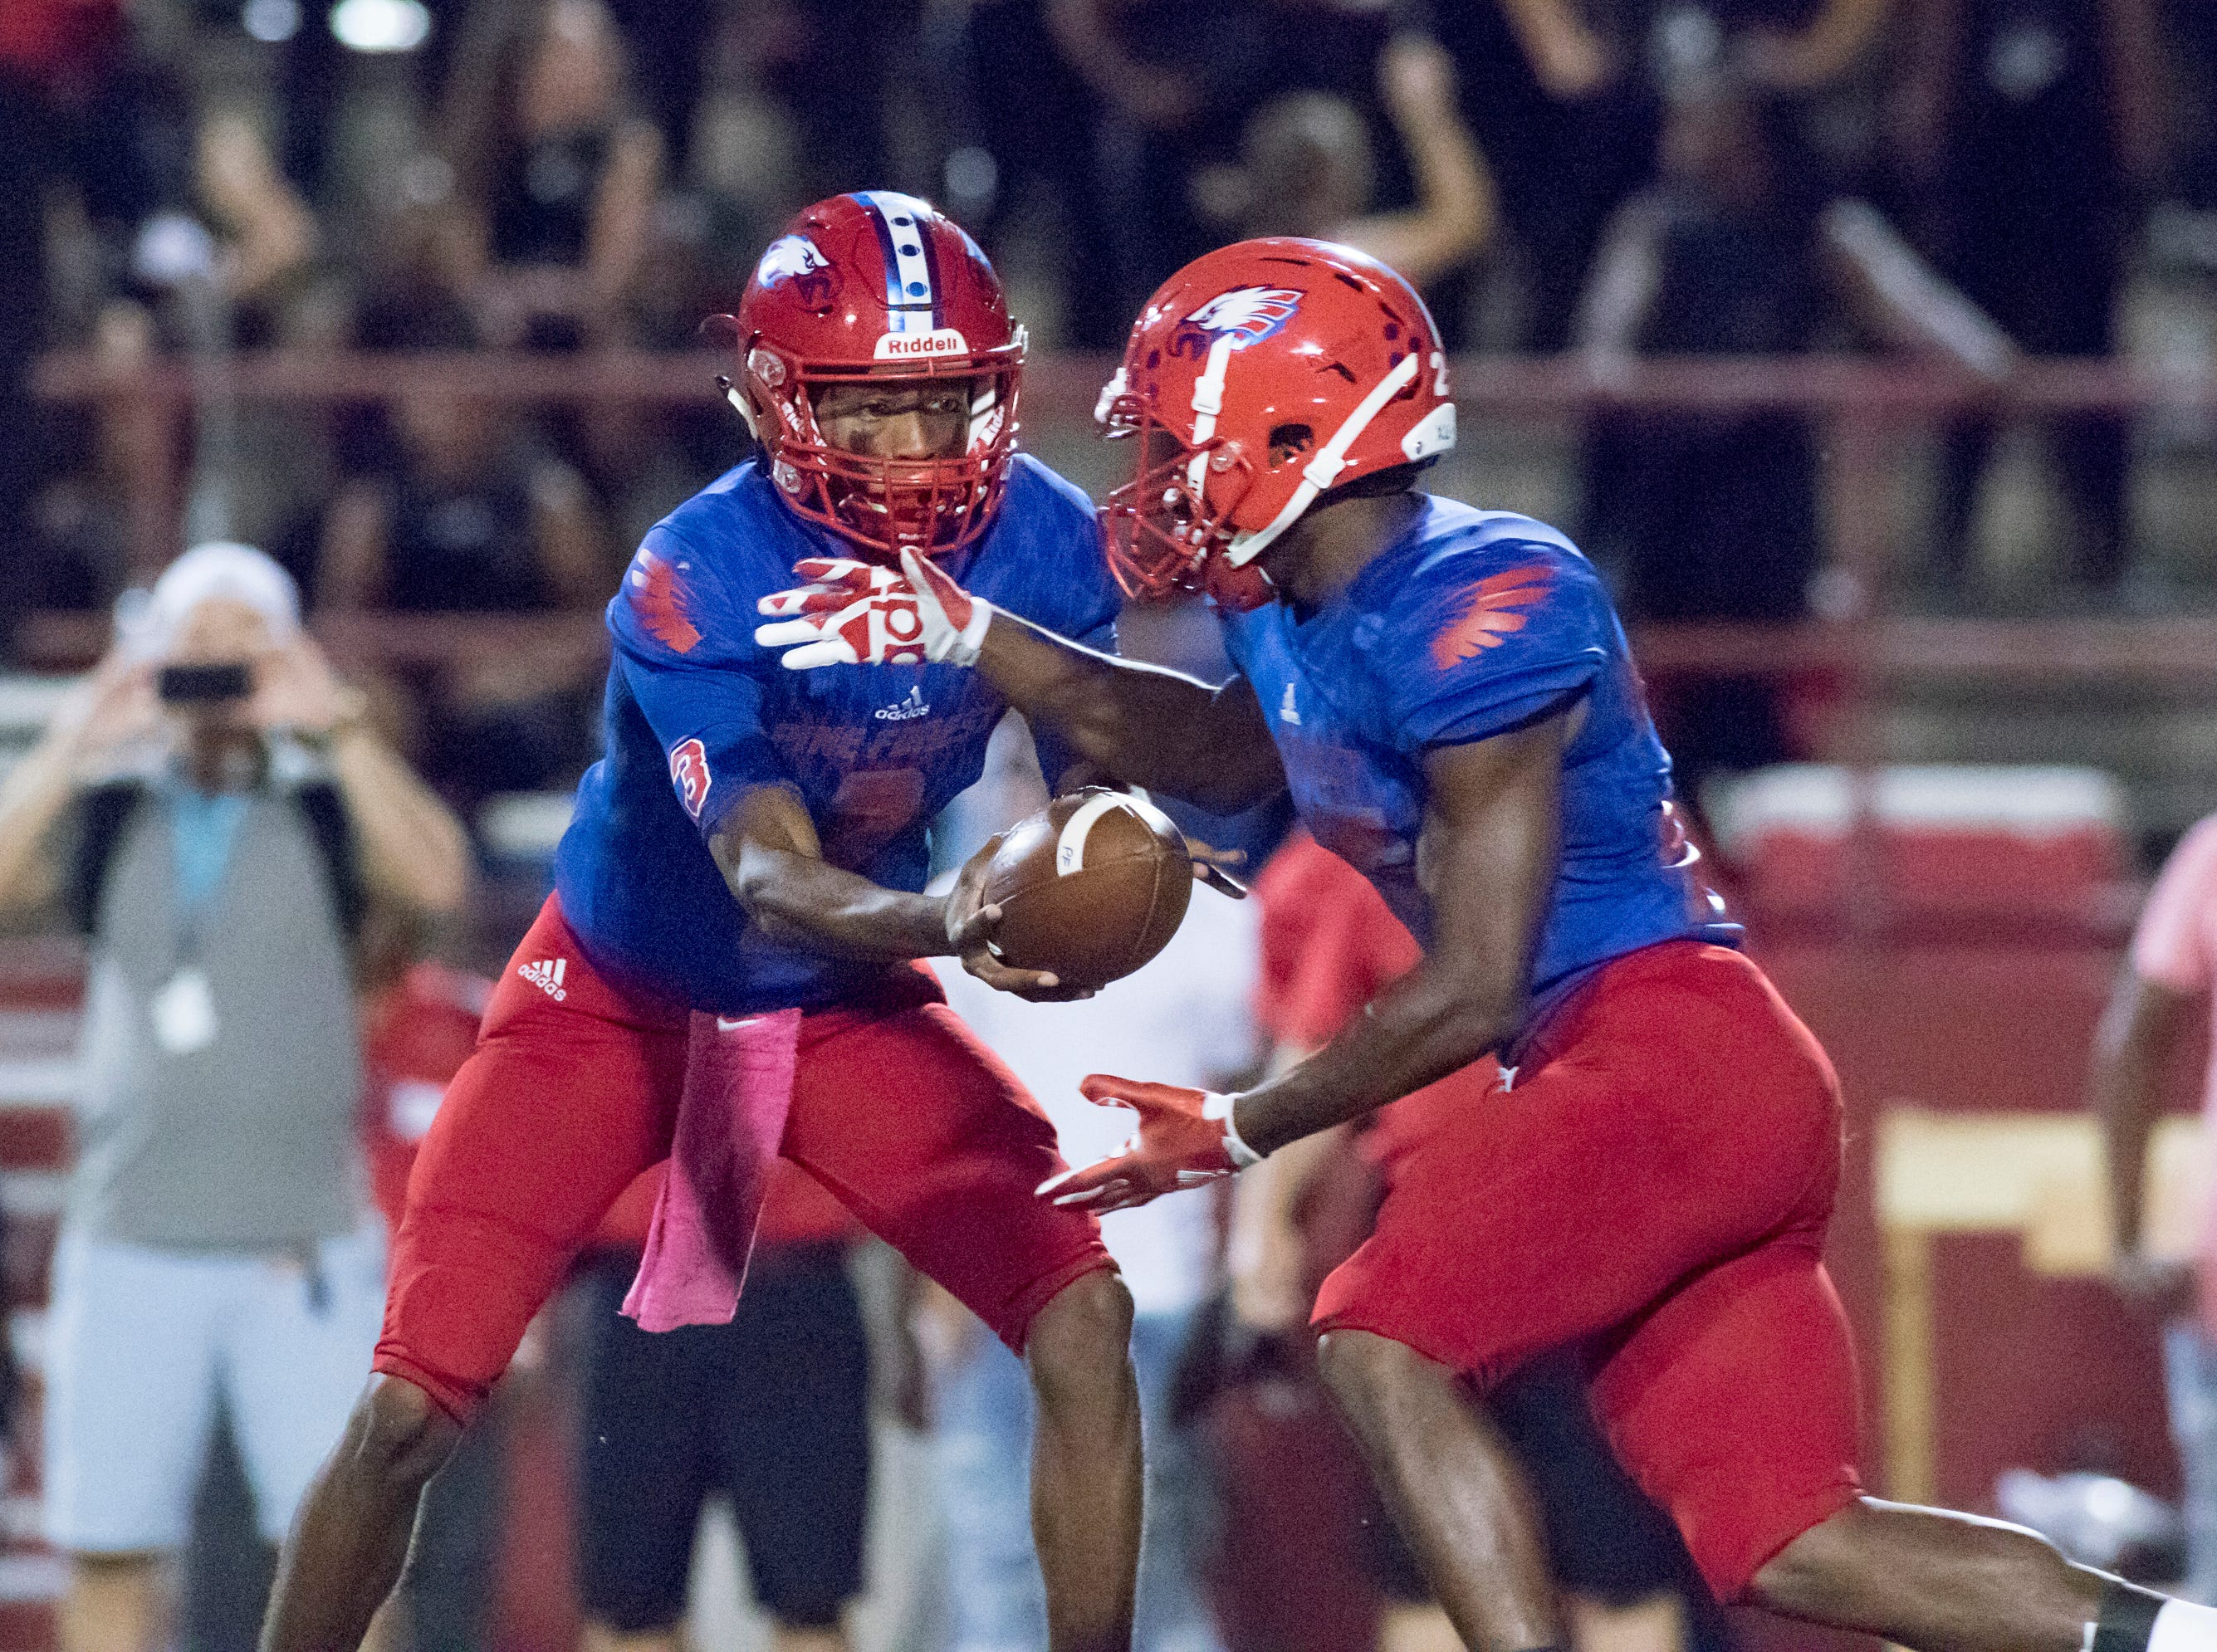 Quarterback Ladarius Clardy (2) hands off to Anwar Lewis (25) during the West Florida vs Pine Forest football game at Pine Forest High School in Pensacola on Friday, October 5, 2018.